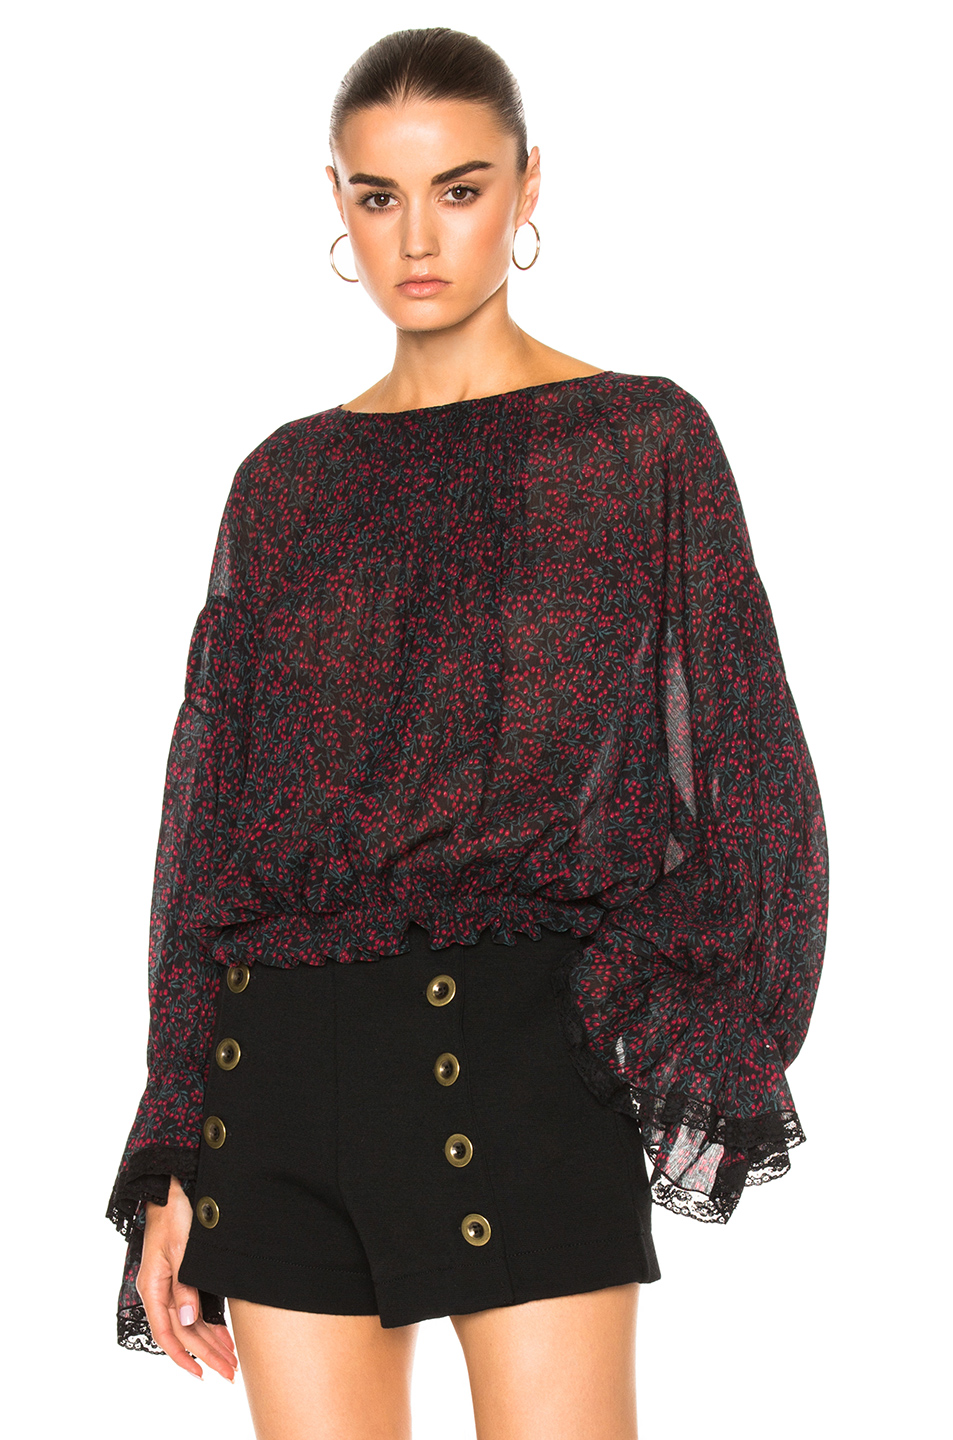 Chloé Cottons CHERRY PRINT ON CREPON BLOUSE IN FLORAL, GREEN, RED.